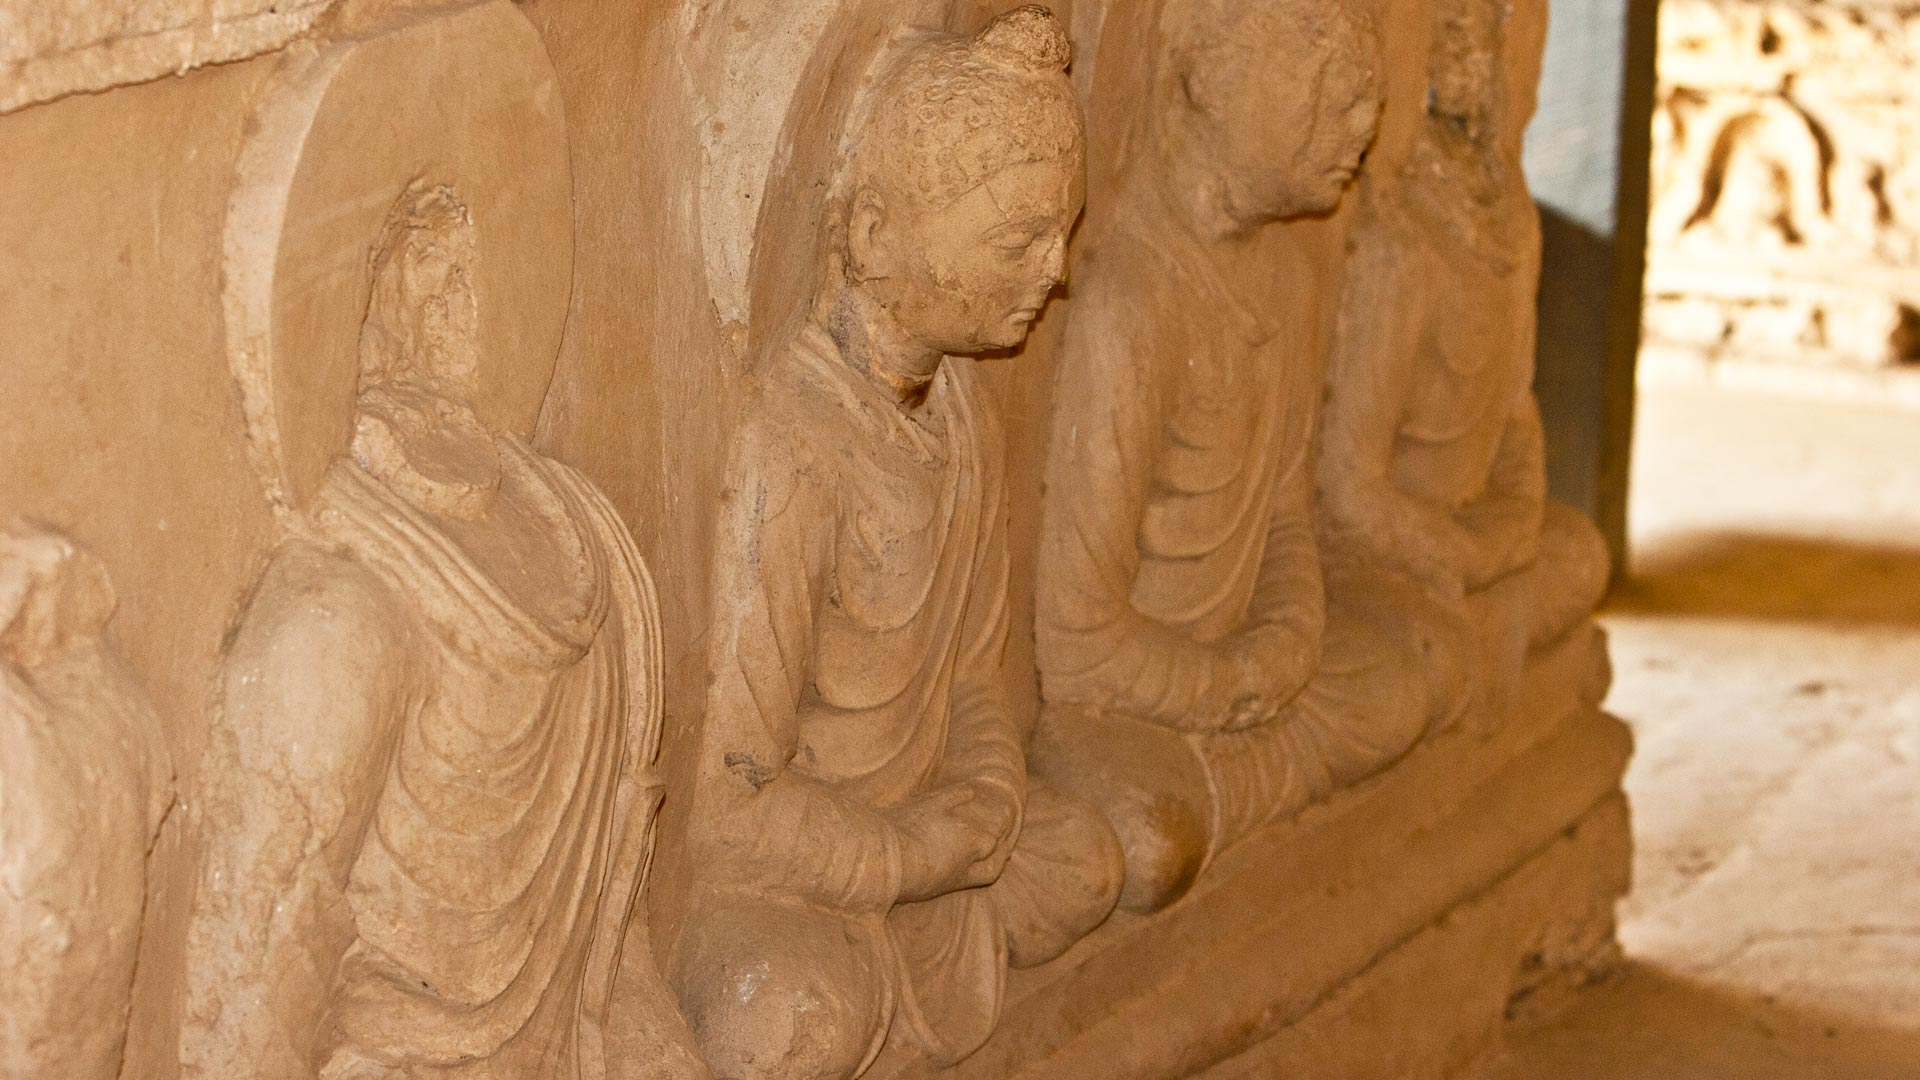 Seated Buddhas in a votive stupa in the lower stupa court of Jaulian, Taxila